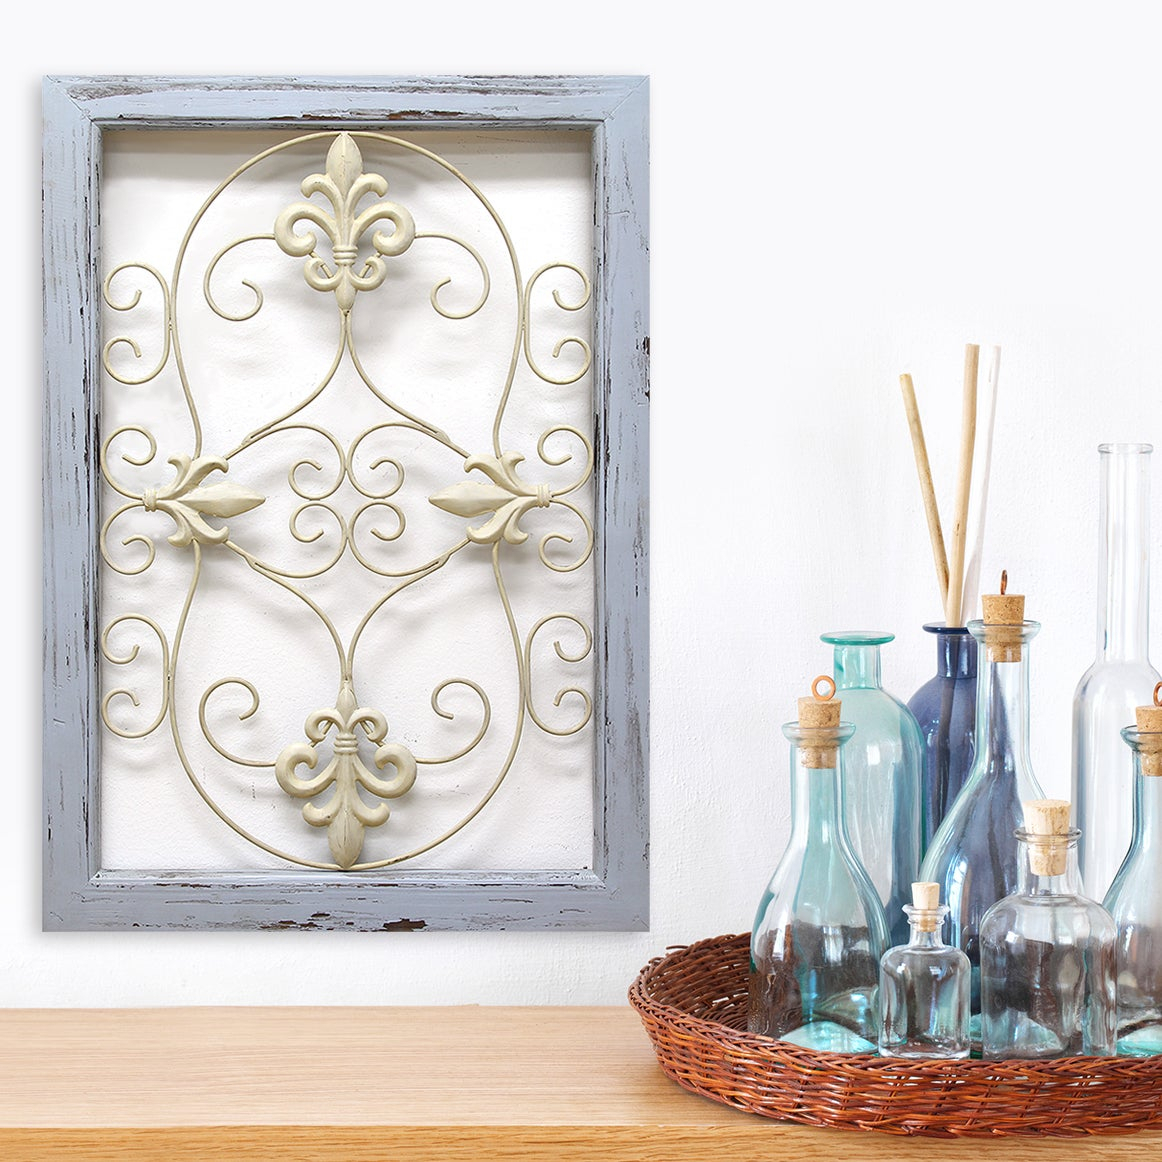 Stratton Home Decor Scroll Panel Wall Decor with Scroll Panel Wall Decor (Image 24 of 30)